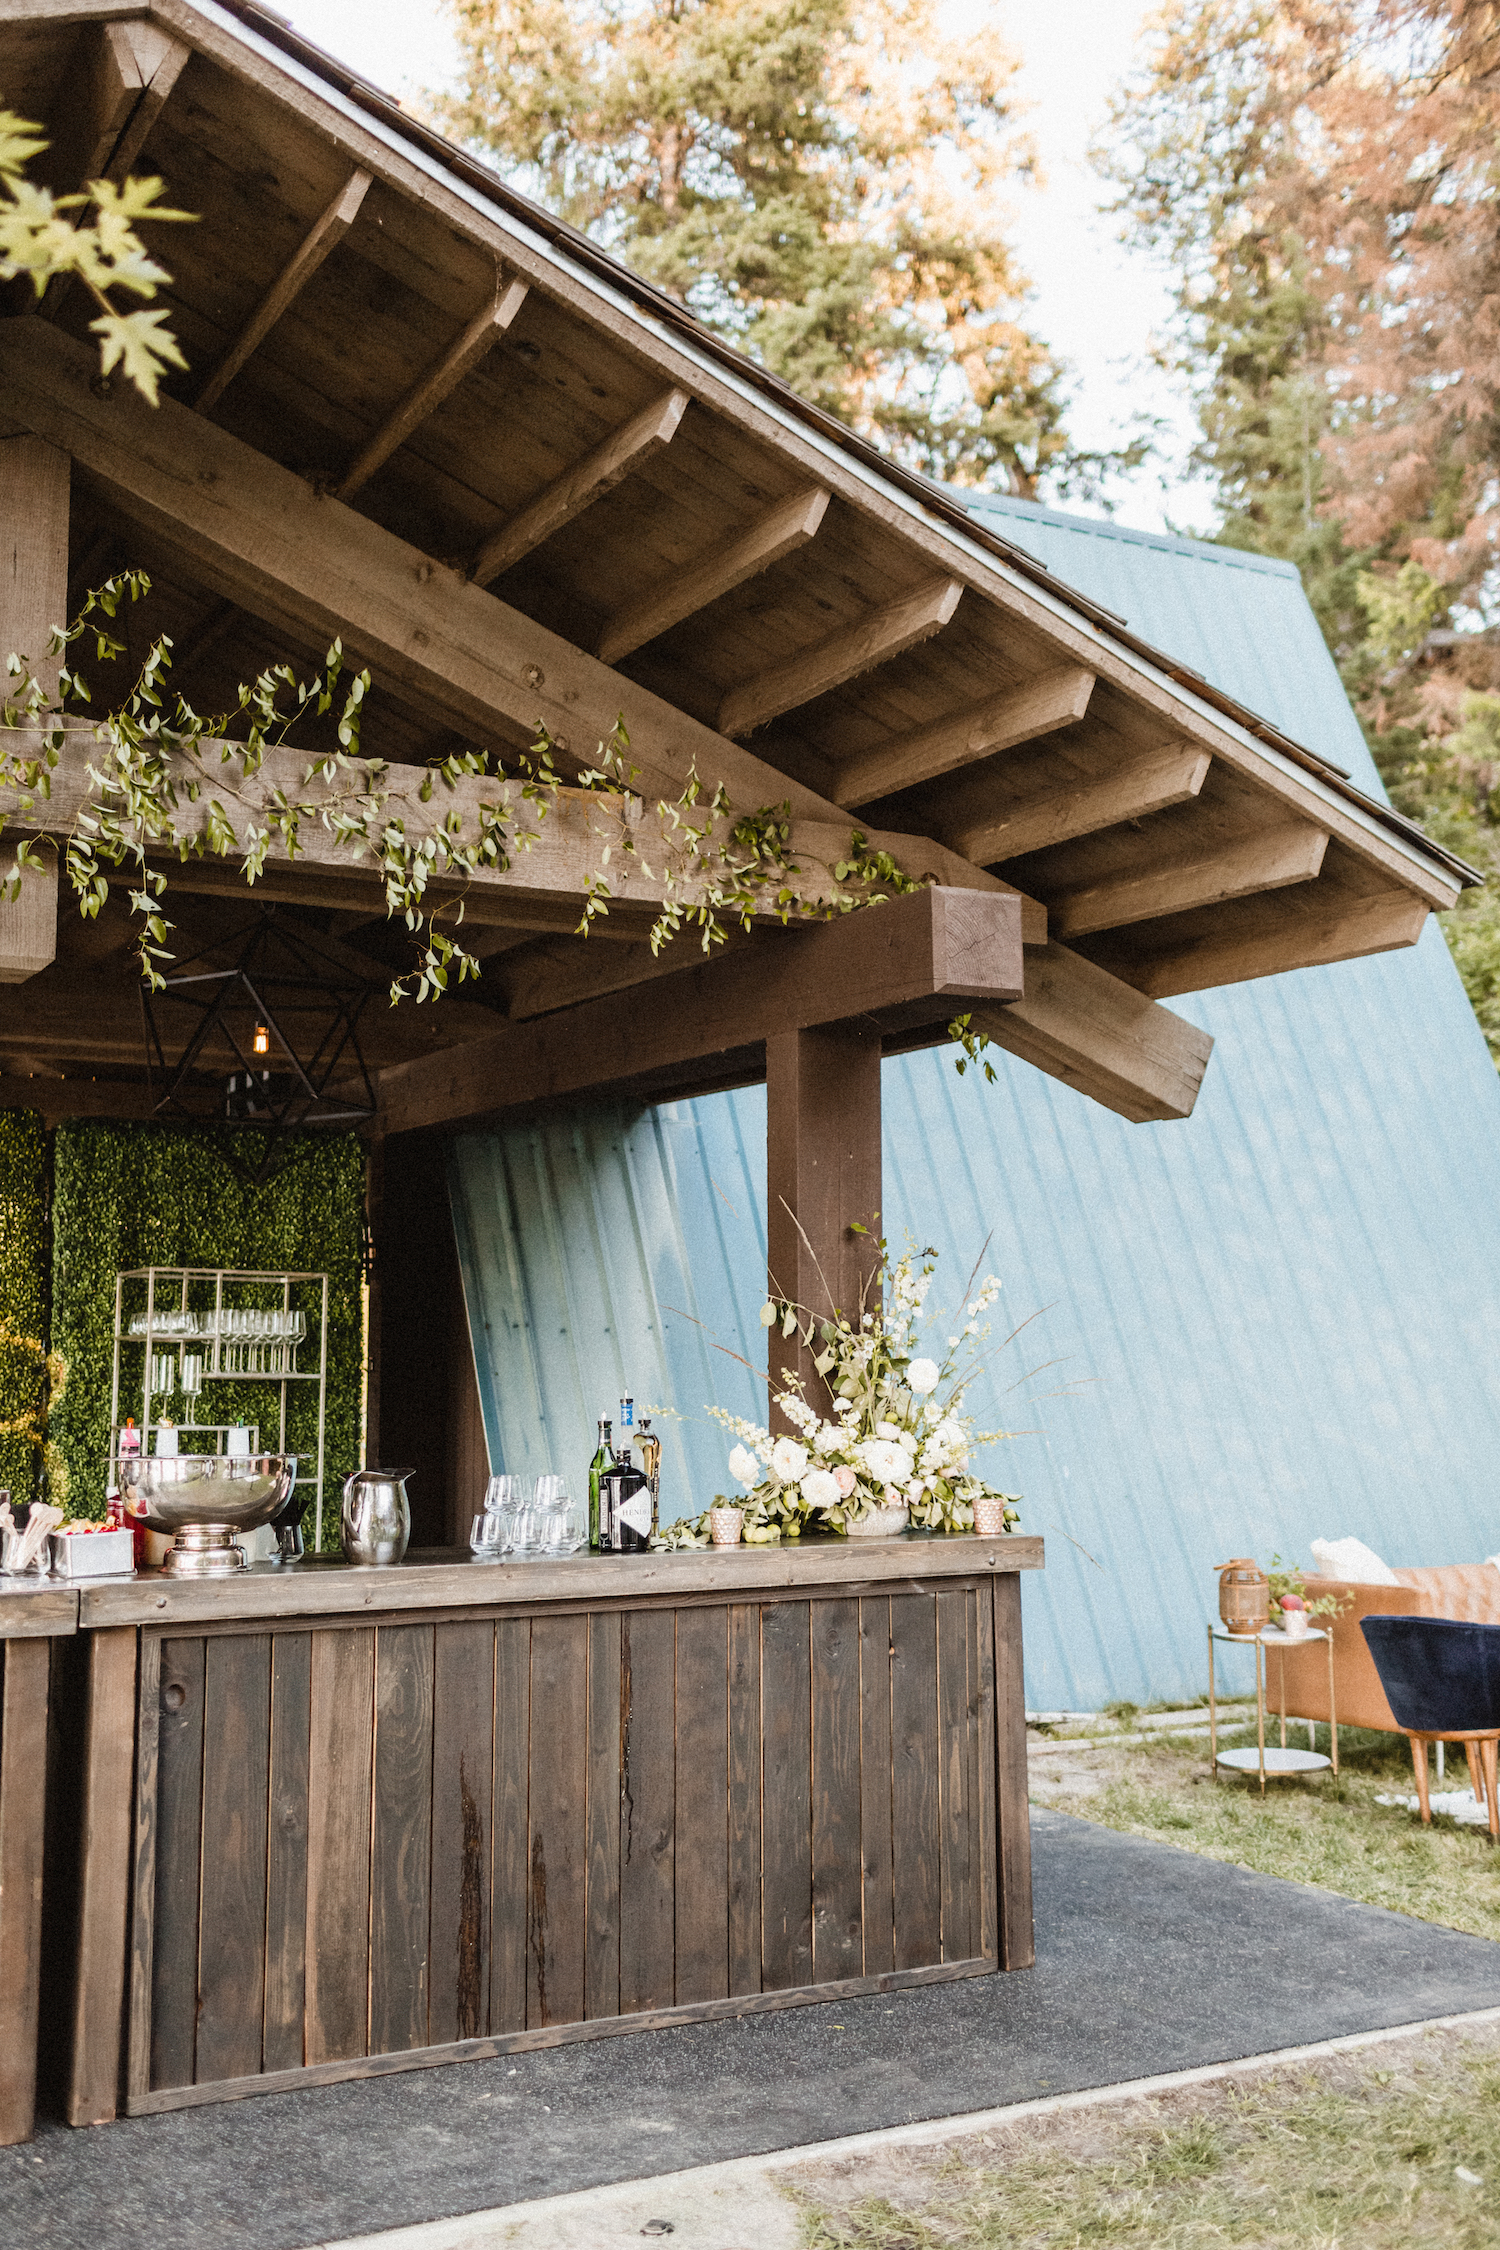 Julianne Hough and Brooks Laich Wedding - Wild Bloom Floral - Sarah Falugo Photography - Simply Troy Event Design 48.jpeg